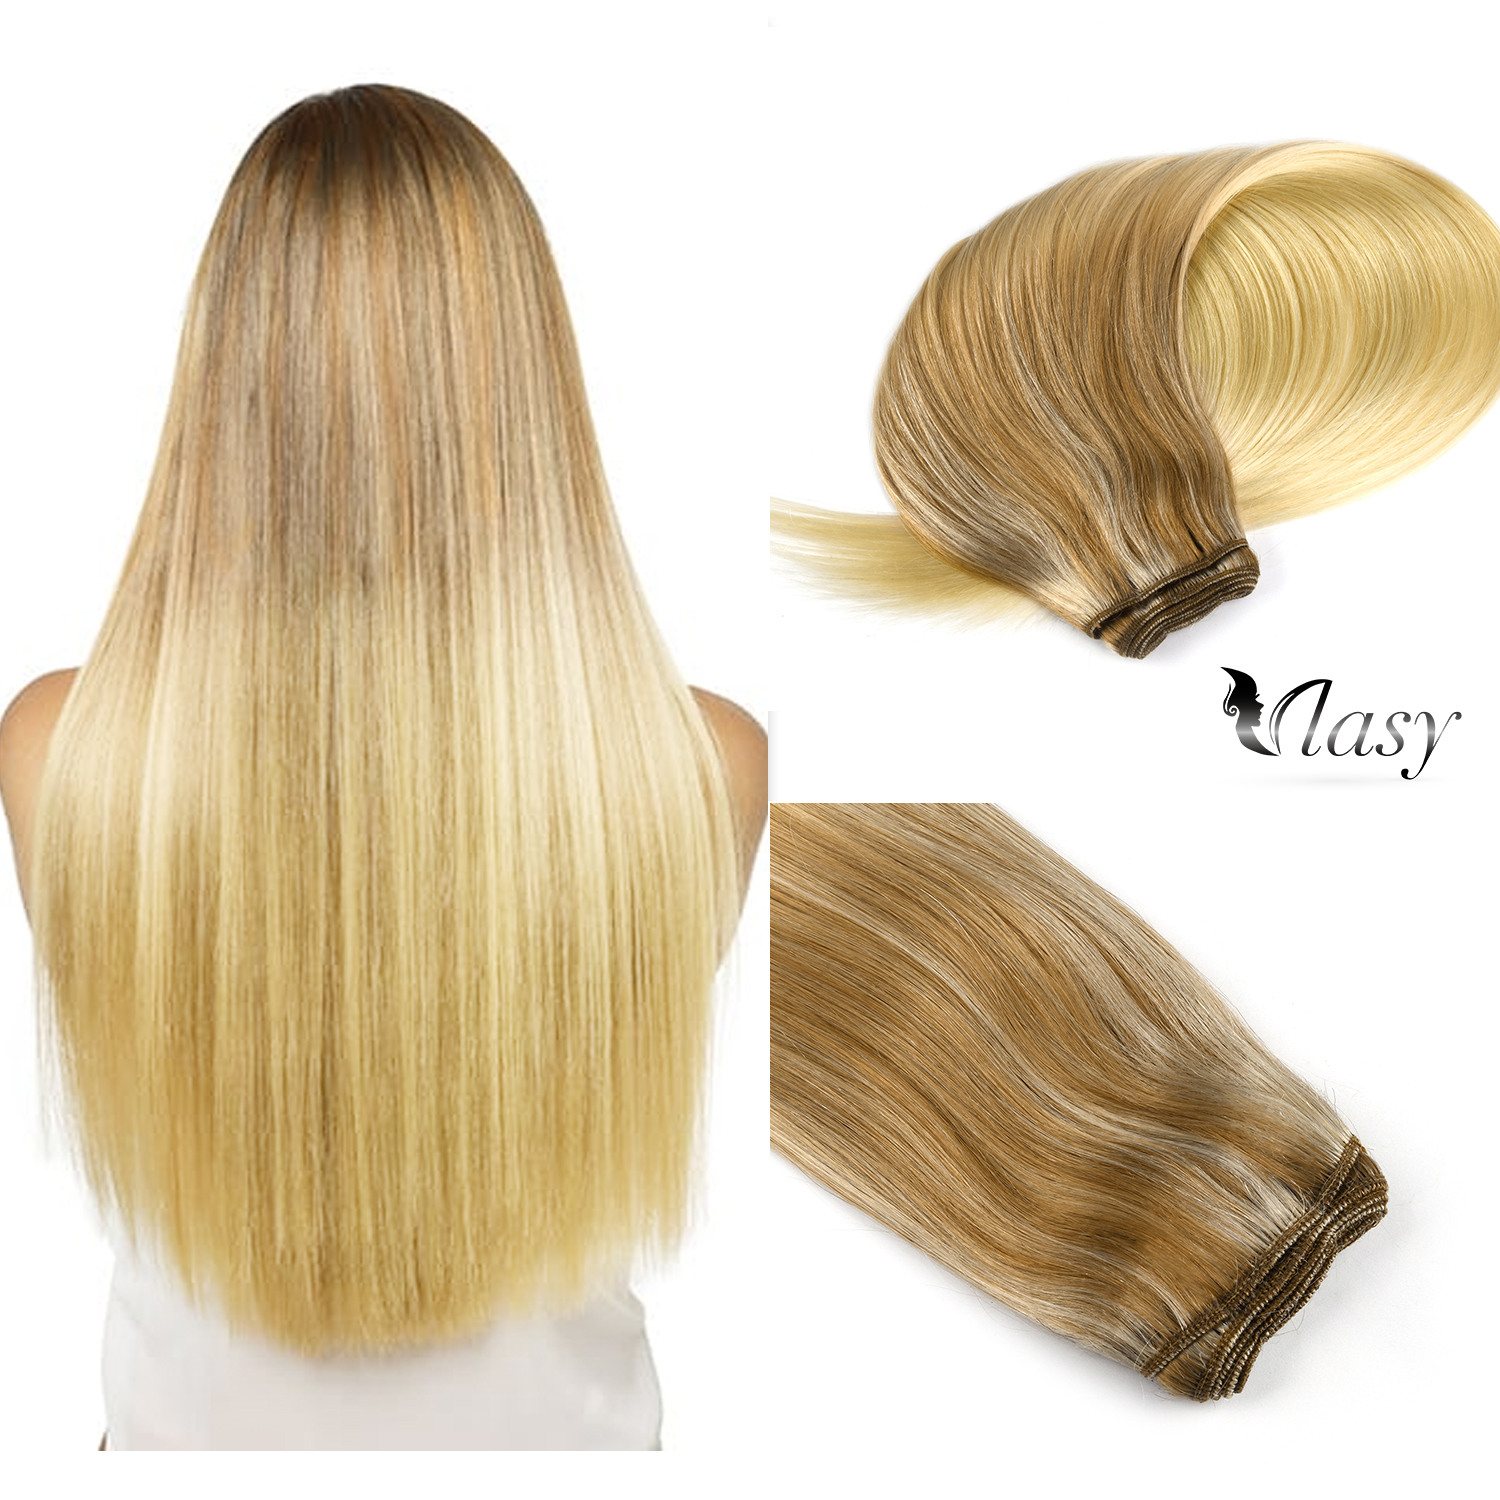 Vlasy 100g/pc 22'' Hair Weave Bundles Straight Remy Weft Hair Extension Caramle & Cream Balayage Color Double Weft Hair